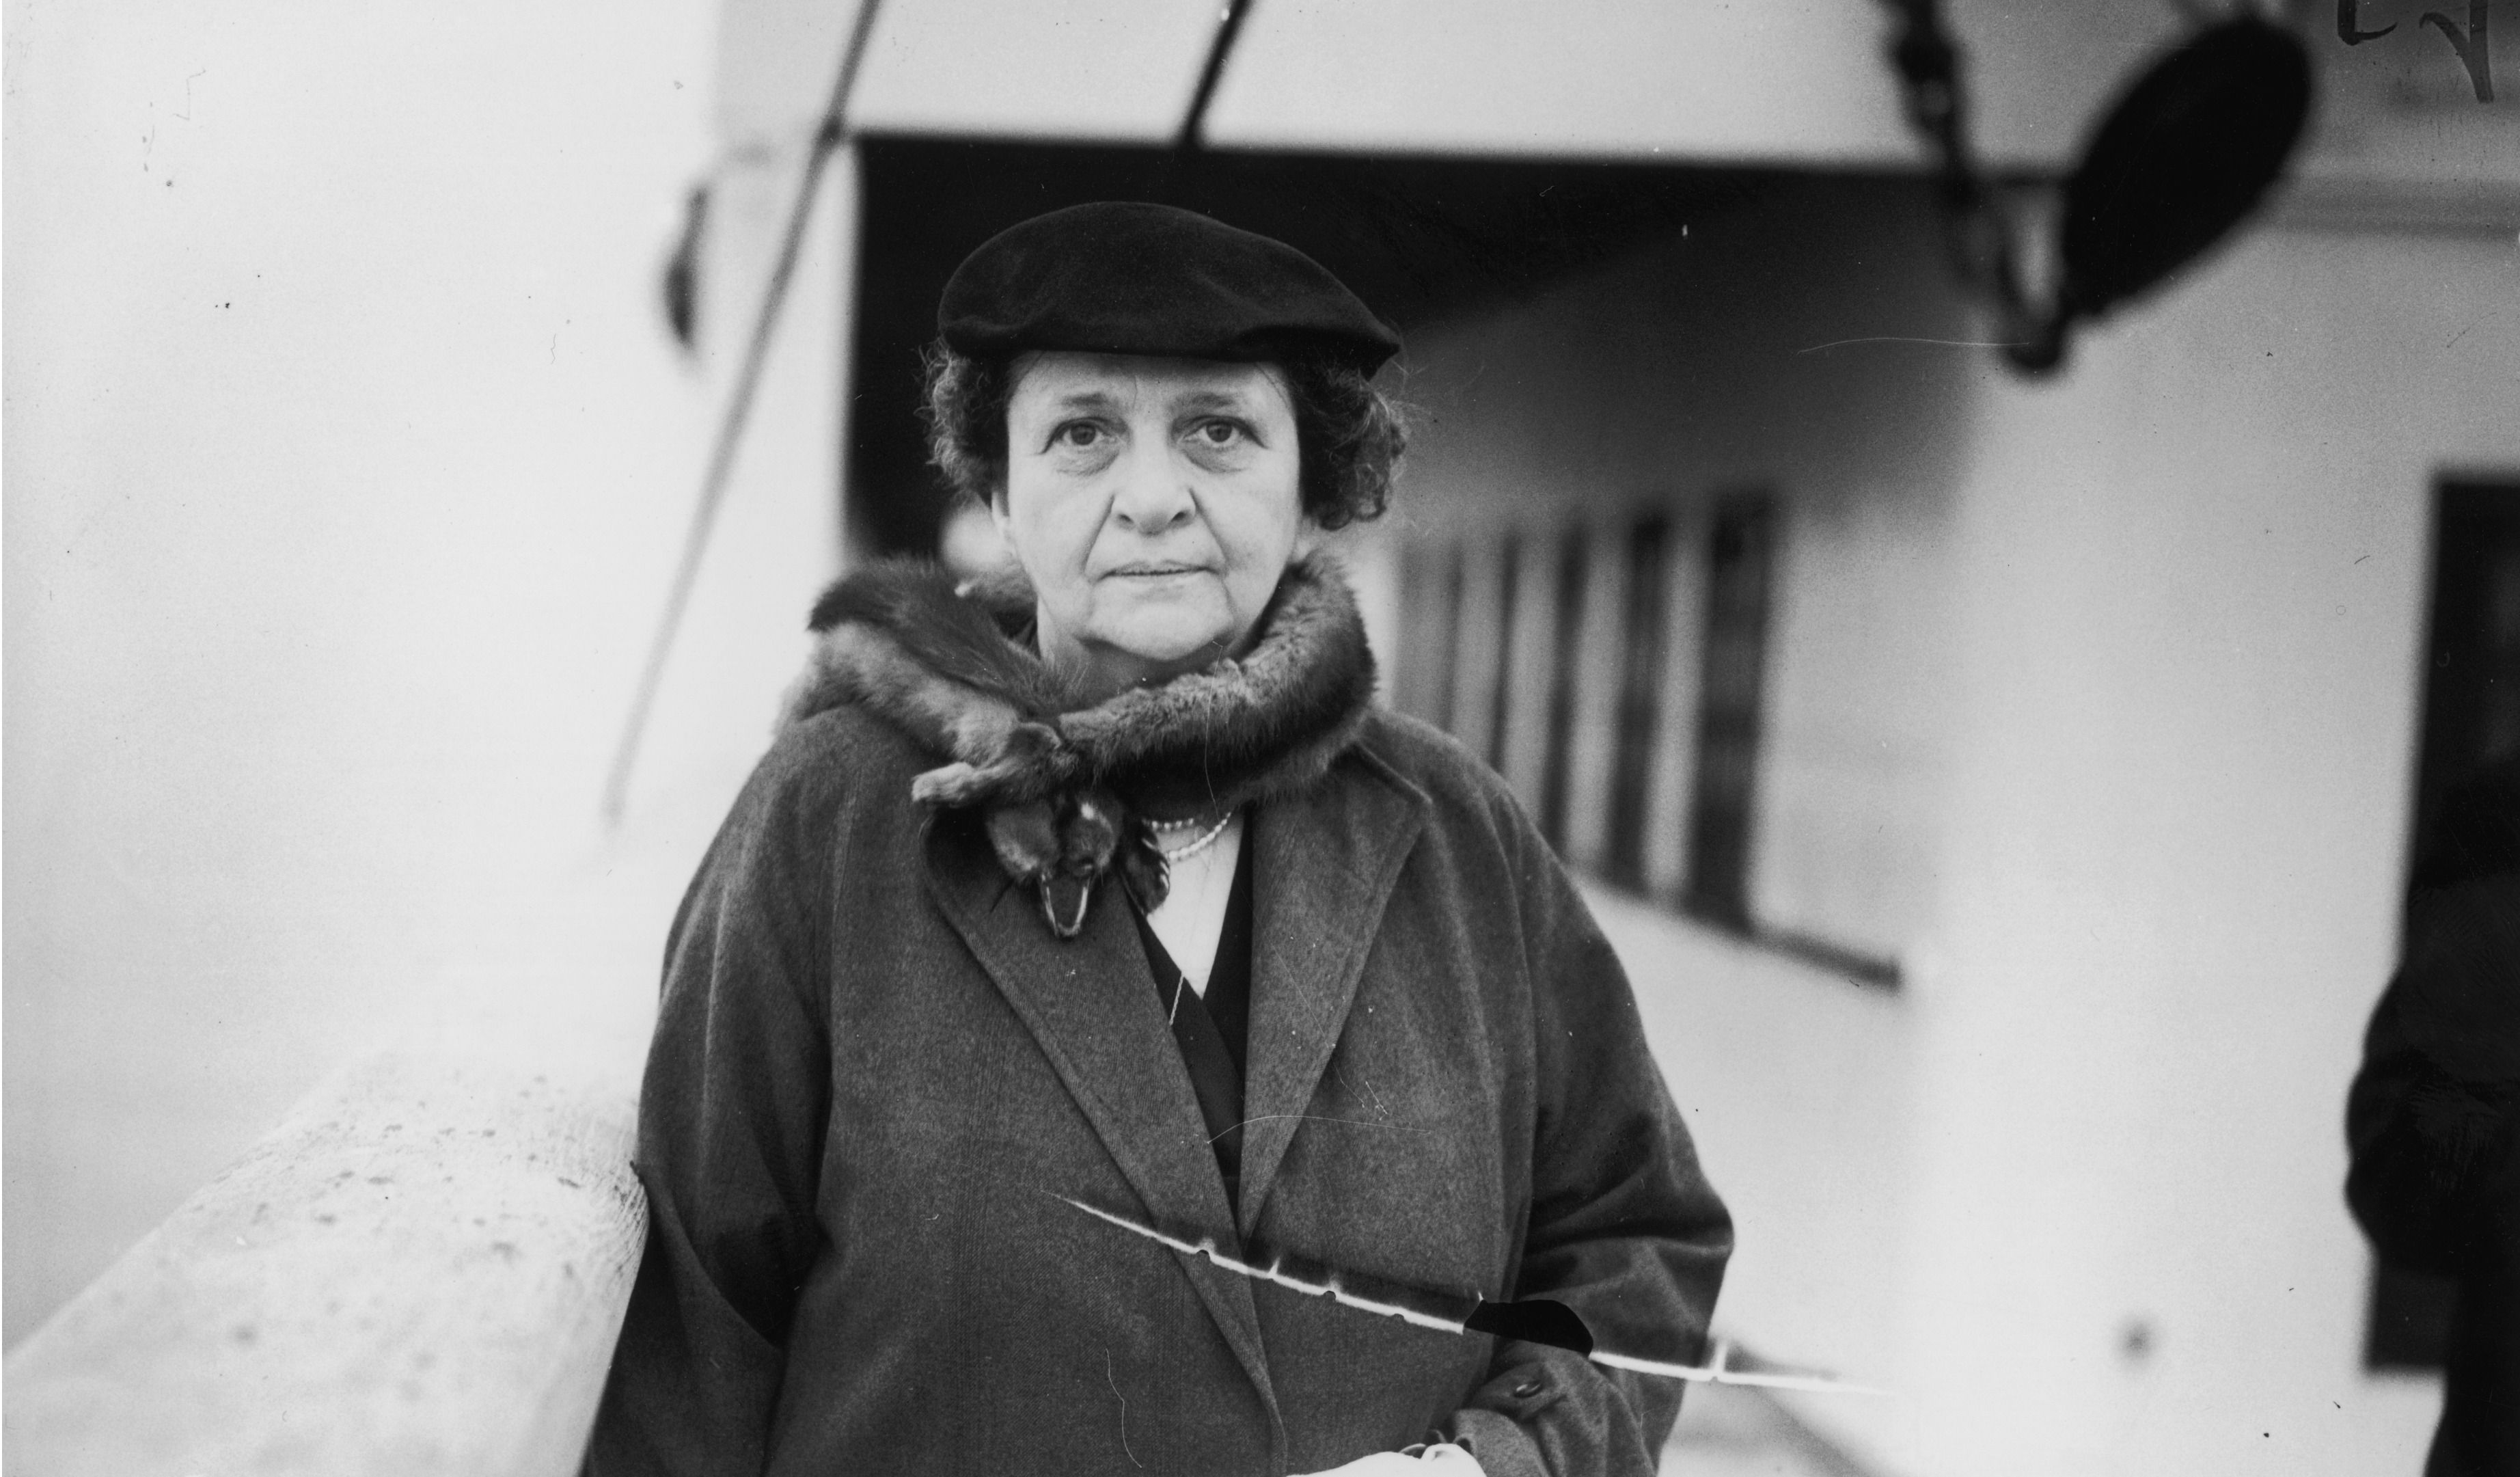 Profile in Courage: Frances Perkins is one of the role models cited by David Brooks in his new book.